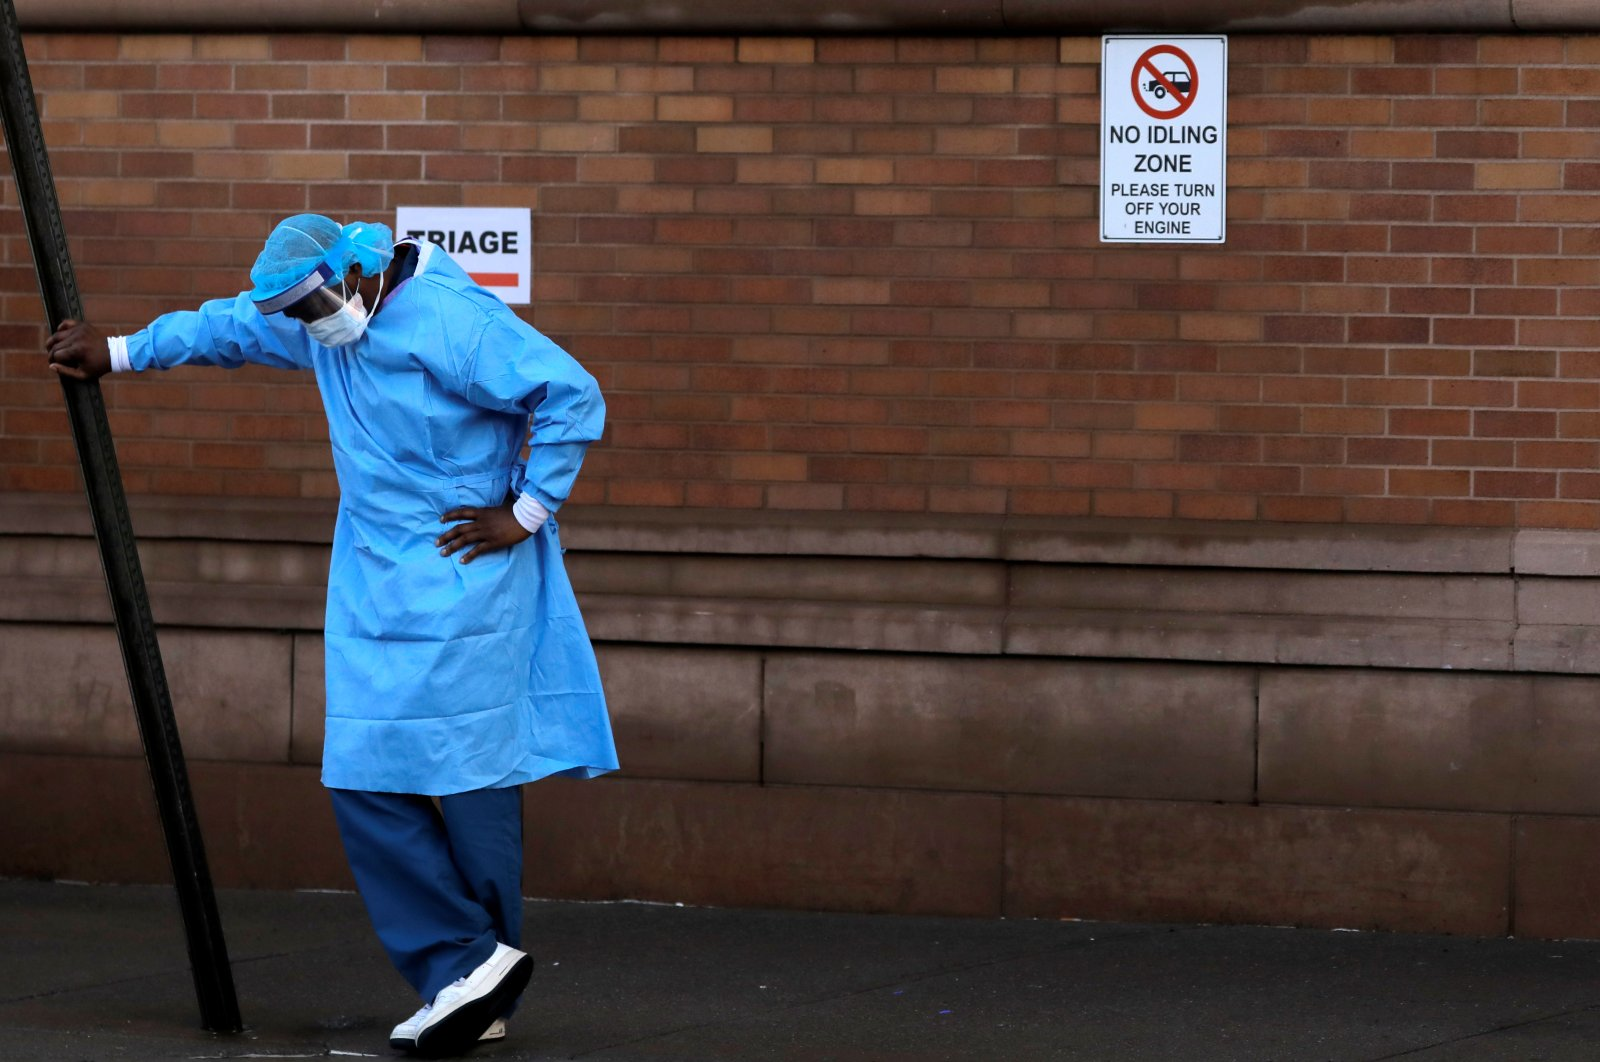 A healthcare worker takes a break outside the emergency center at Maimonides Medical Center during the outbreak of COVID-19 in the Brooklyn borough of New York, April 13, 2020. (Reuters Photo)